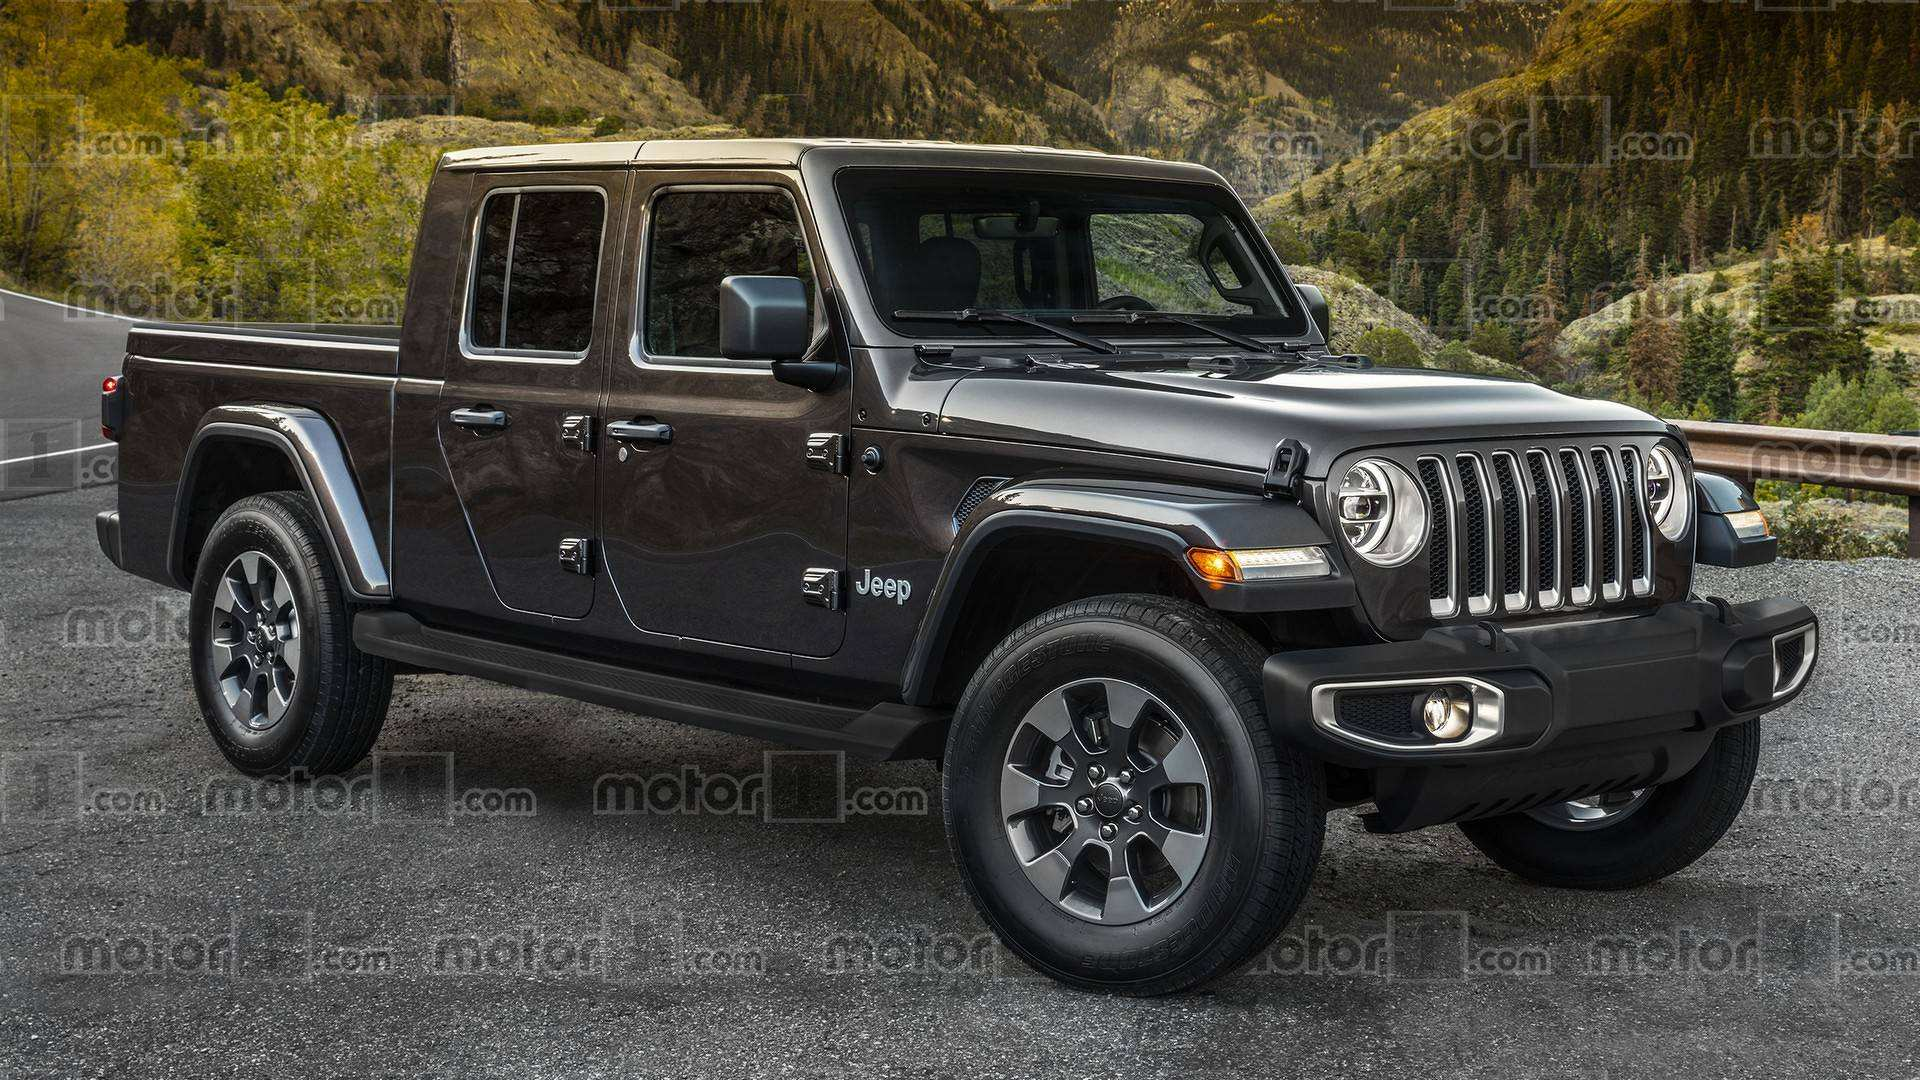 87 All New 2019 Jeep Scrambler Specs Ratings